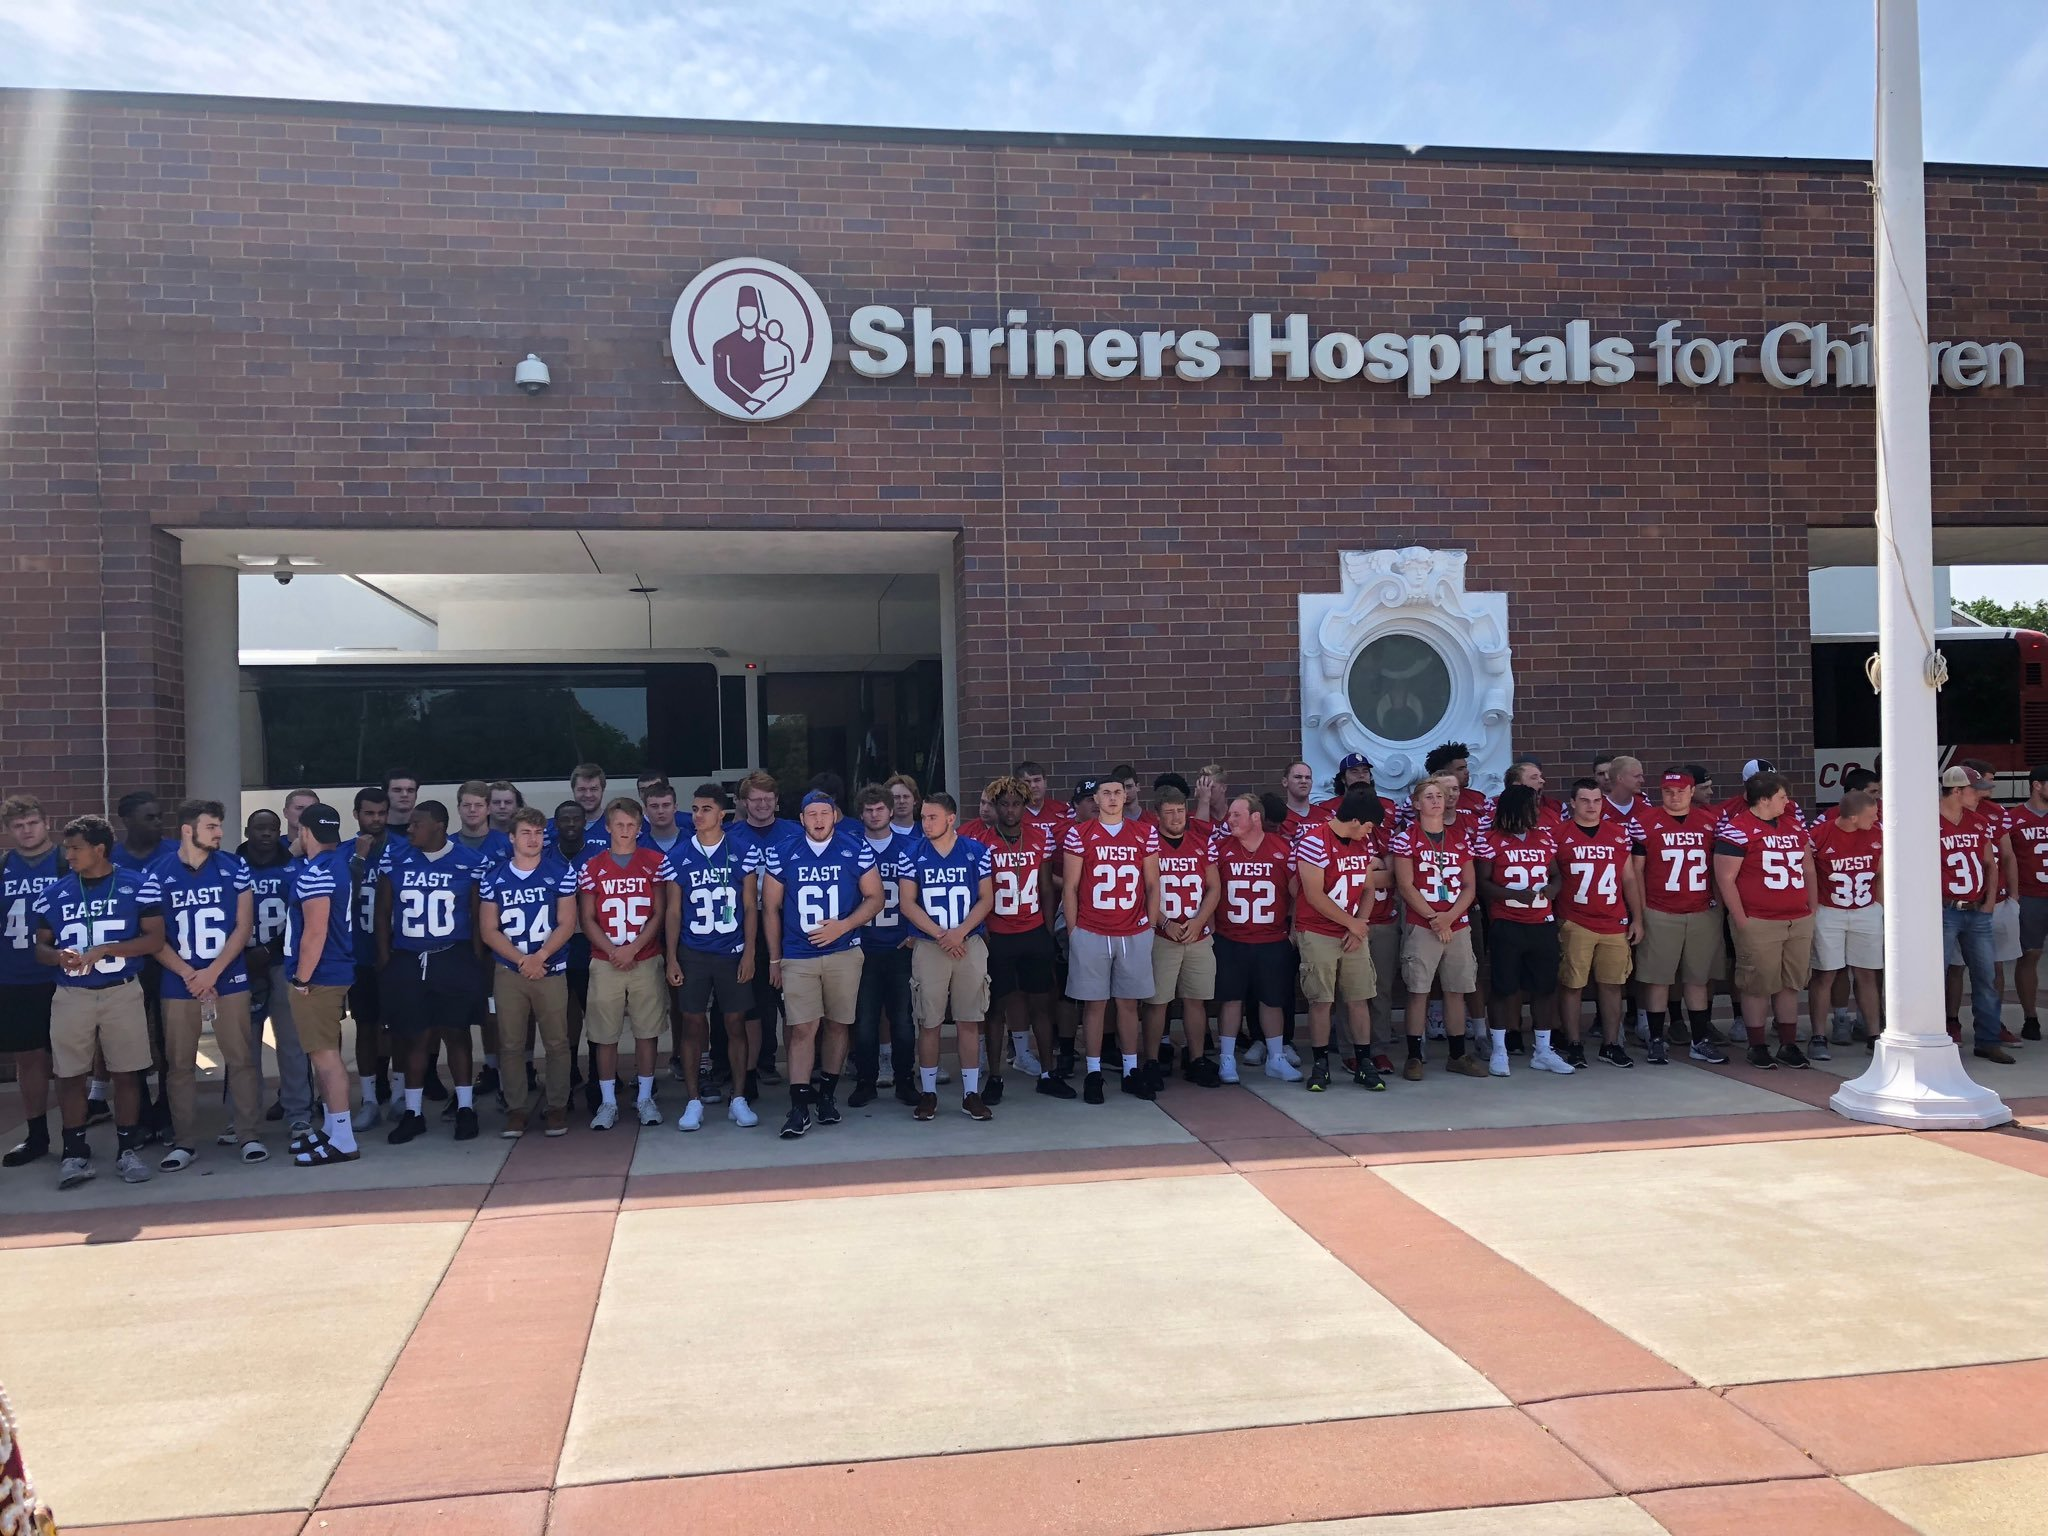 Illinois Shrine Game rosters pose during their visit to the children's hospital. (photo: @IHSFCA on Twitter)